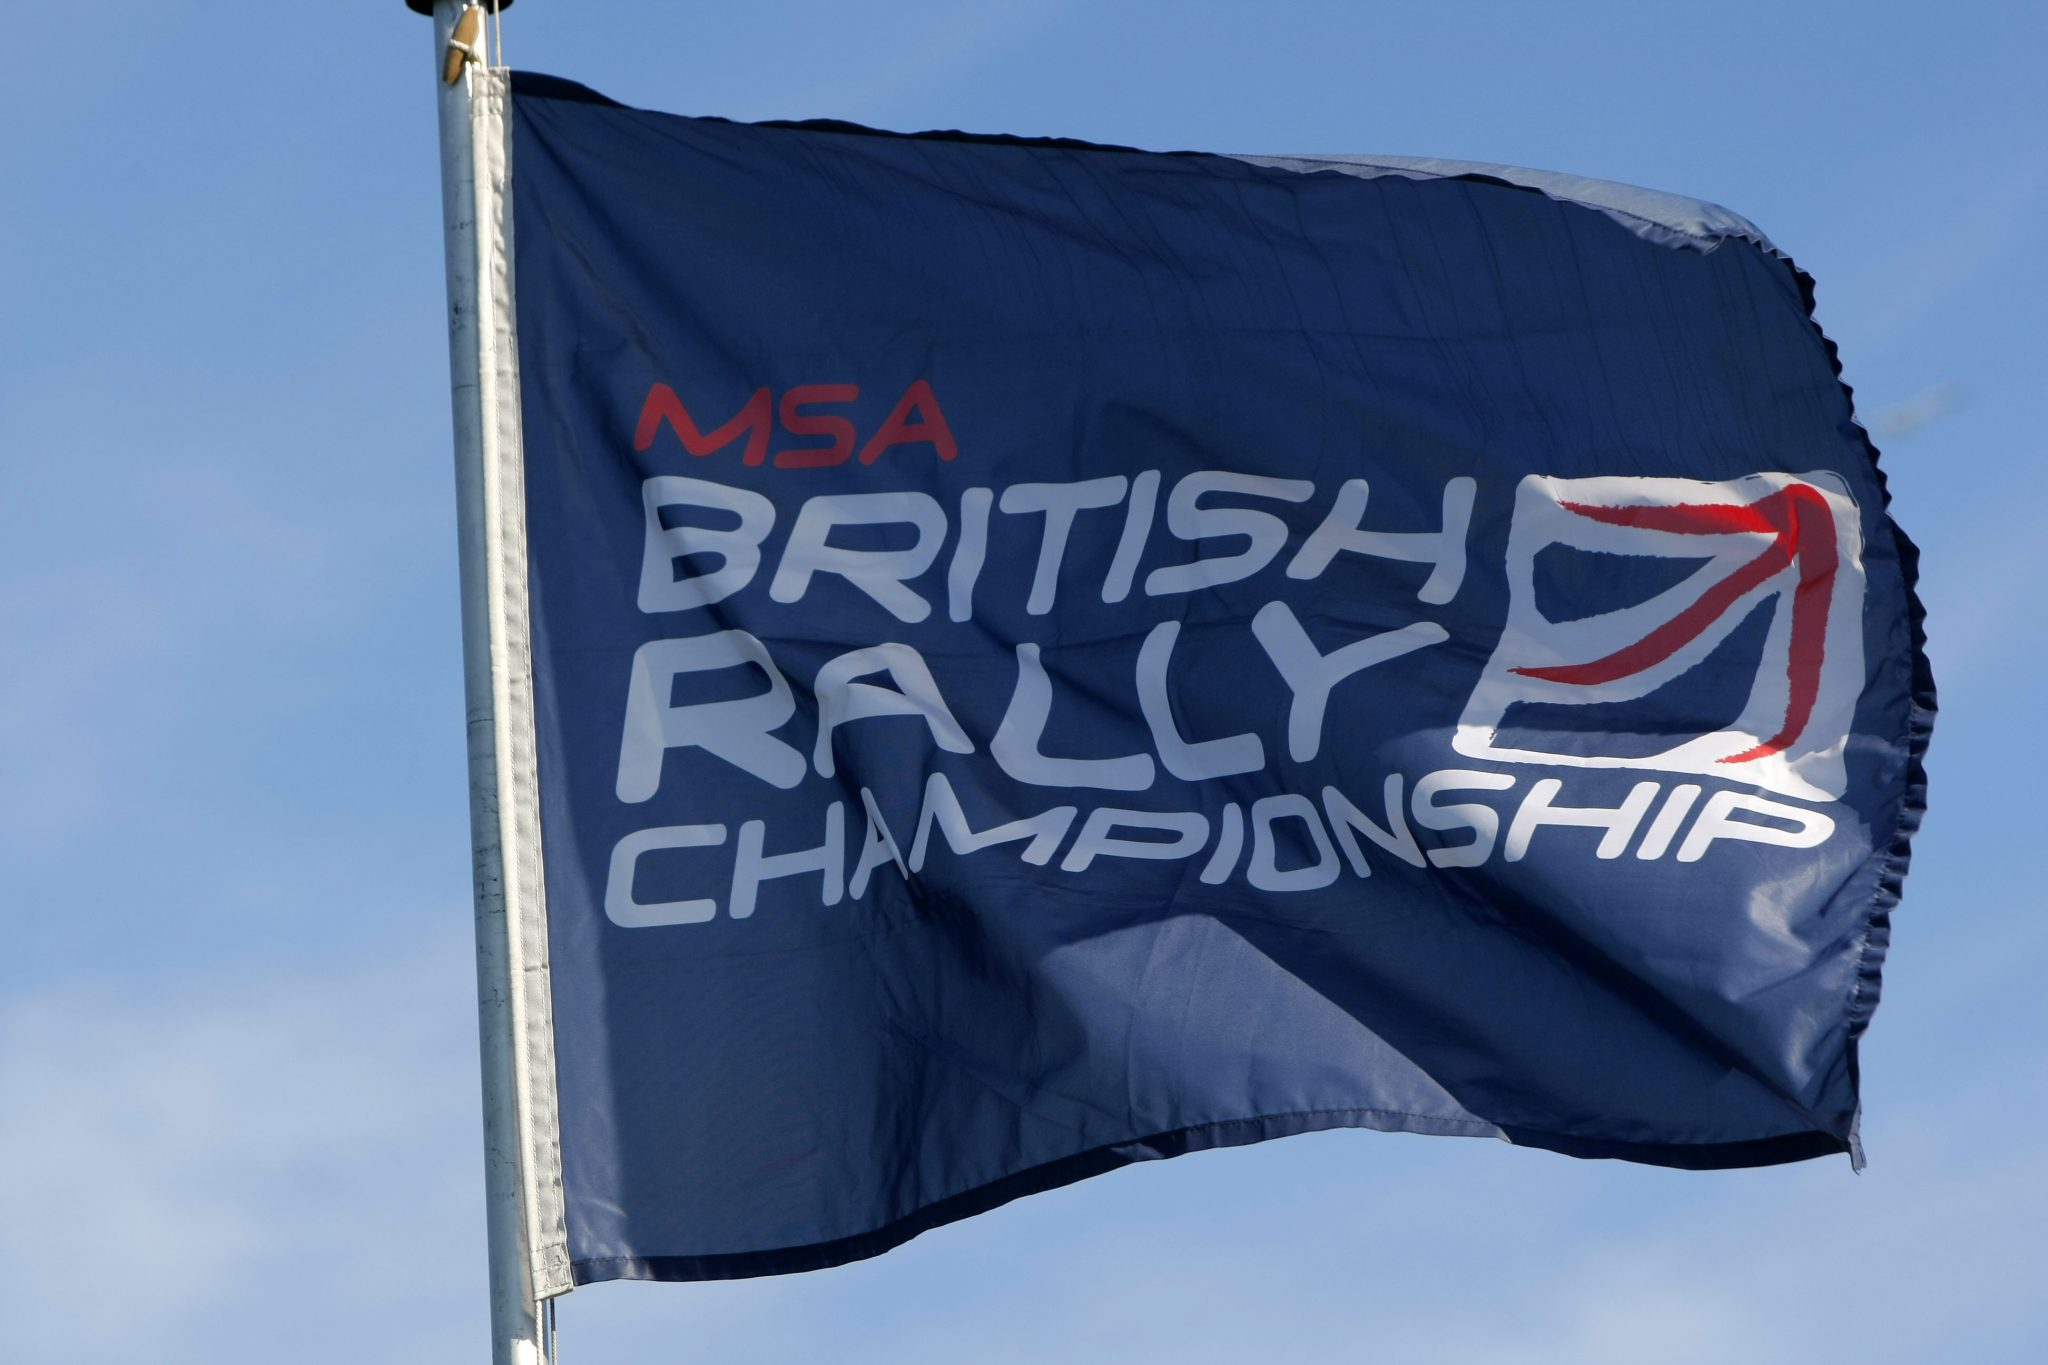 2999, 2999, British Rally Championship, BRC-07.jpg, 668323, https://www.surfturf.co.uk/wp-content/uploads/2018/06/BRC-07.jpg, https://www.surfturf.co.uk/case-studies/british-rally/british-rally-championship-8/, , 3, , British Rally Championship, british-rally-championship-8, inherit, 849, 2018-11-28 14:22:29, 2018-11-28 14:22:29, 0, image/jpeg, image, jpeg, https://www.surfturf.co.uk/wp-includes/images/media/default.png, 3888, 2592, Array